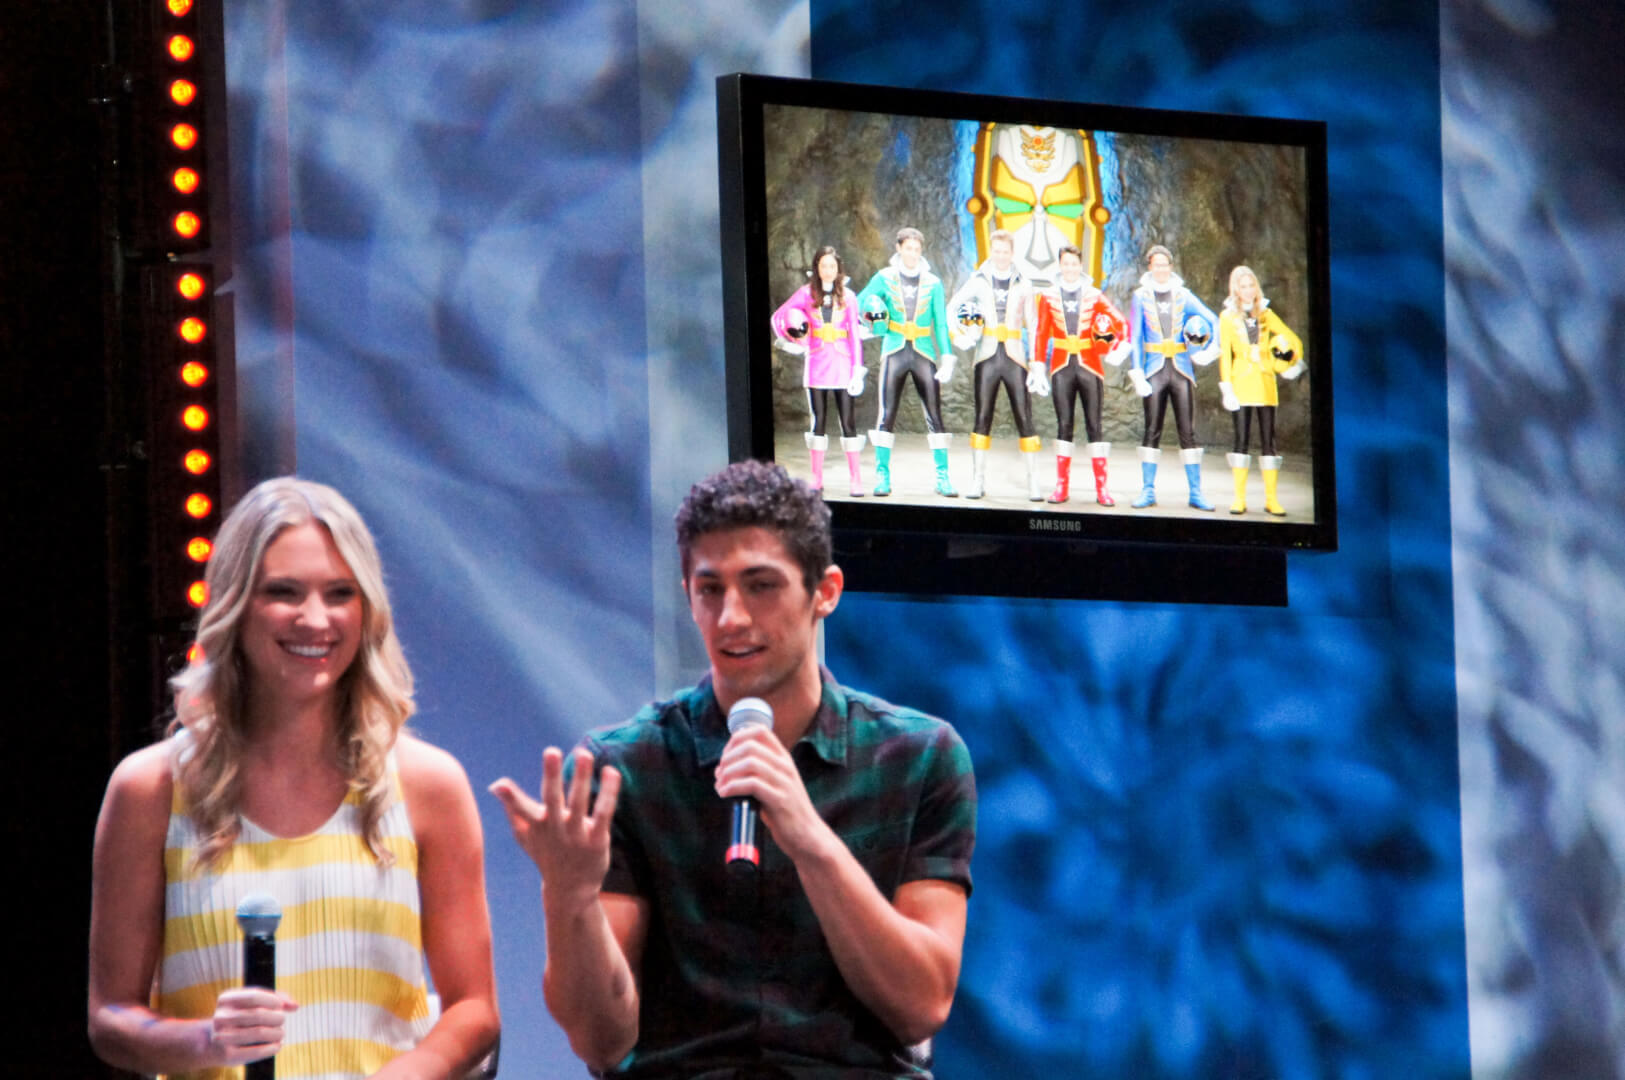 Nick Hotel hosts Power Rangers Super Megaforce weekends in